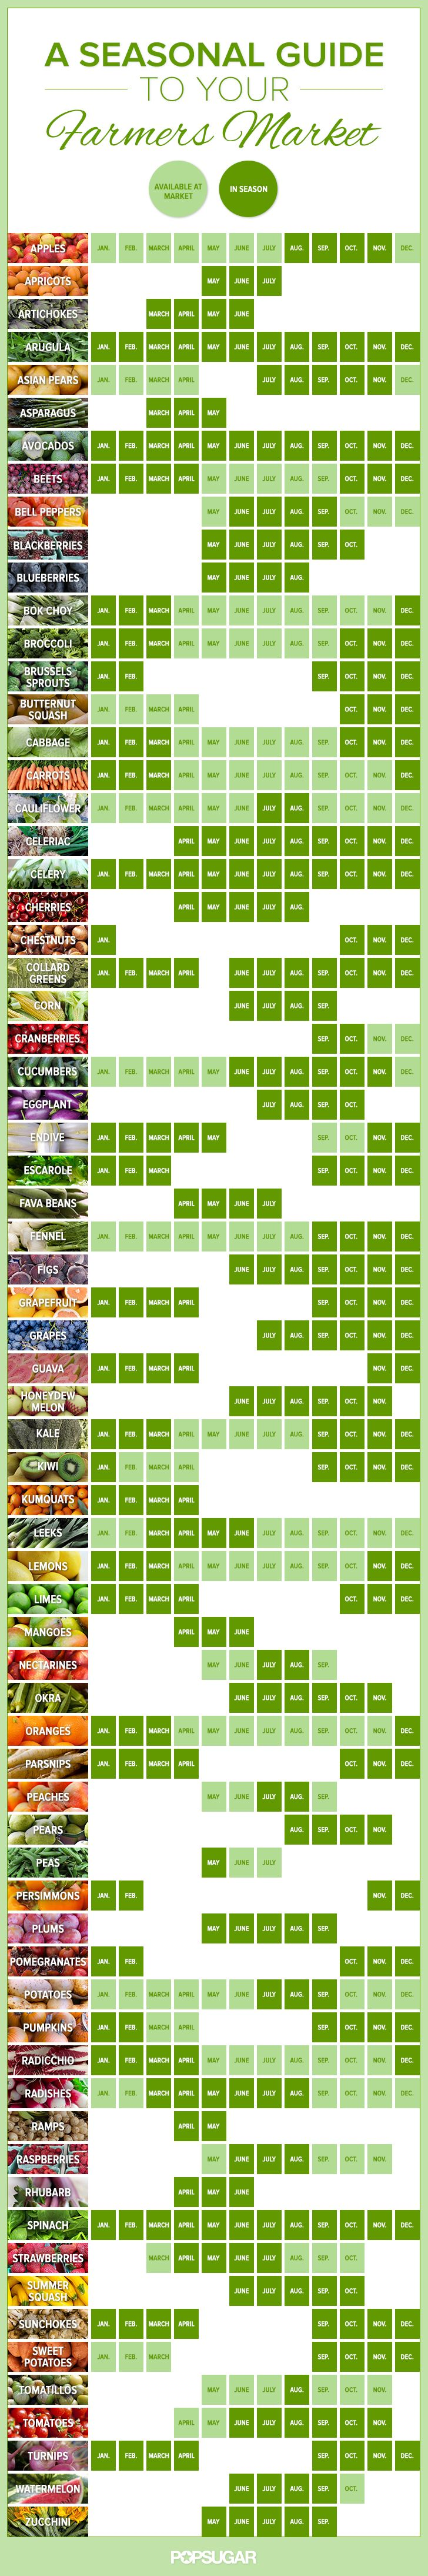 Your Seasonal Produce Guide (click on the link for a printable version)